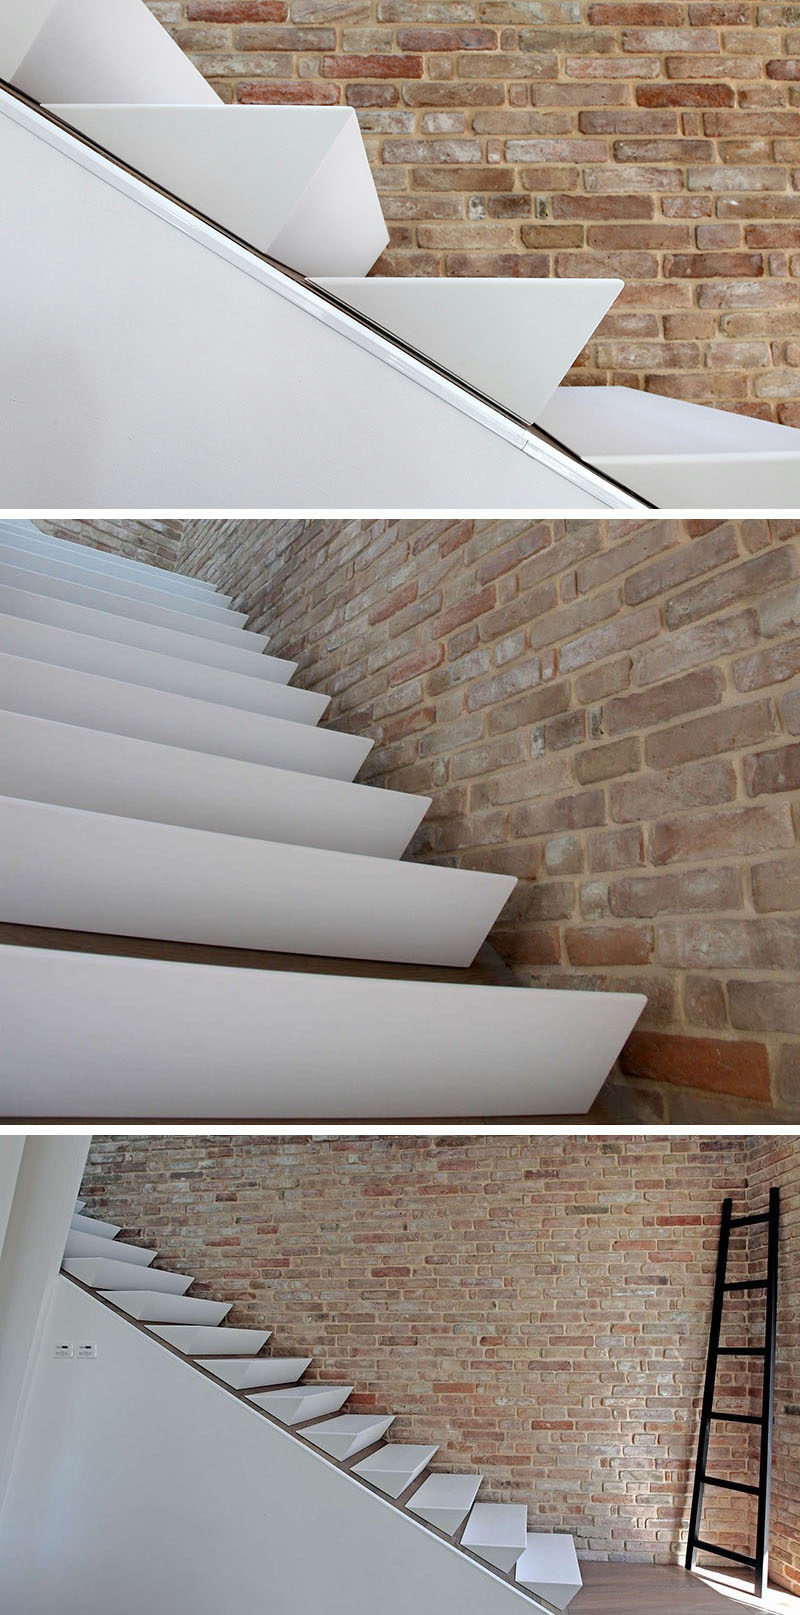 18 Examples Of Stair Details To Inspire You // These wedge-shaped stairs are made of white corian